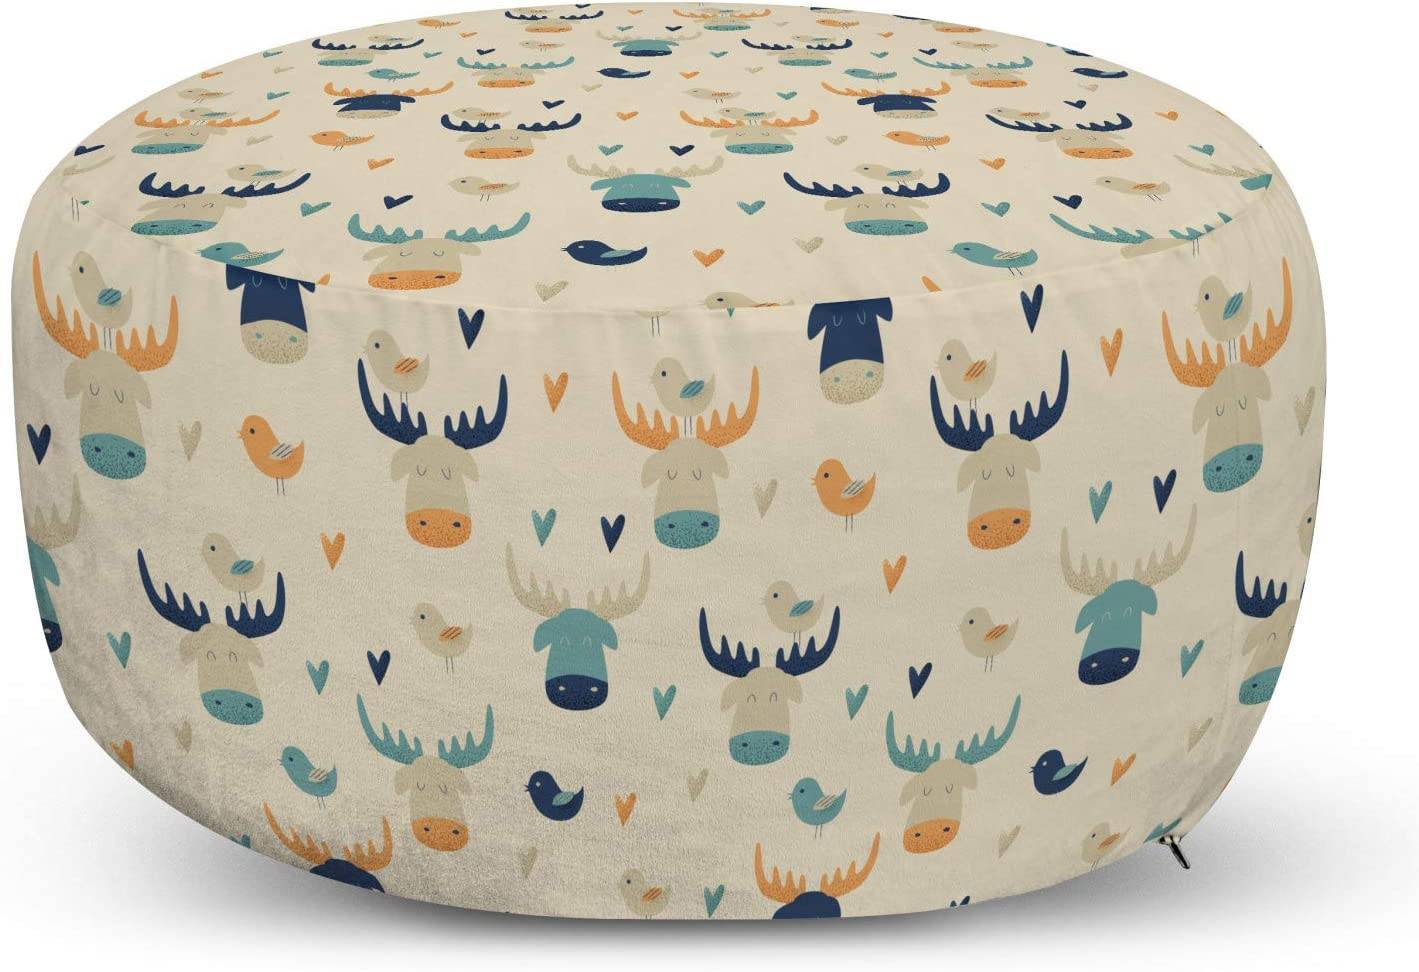 Lunarable Moose Ottoman Pouf, Illustration of Elk Heads Hearts and Birds in Repeated Pattern Art Print, Decorative Soft Foot Rest with Removable Cover Living Room and Bedroom, Beige Multicolor